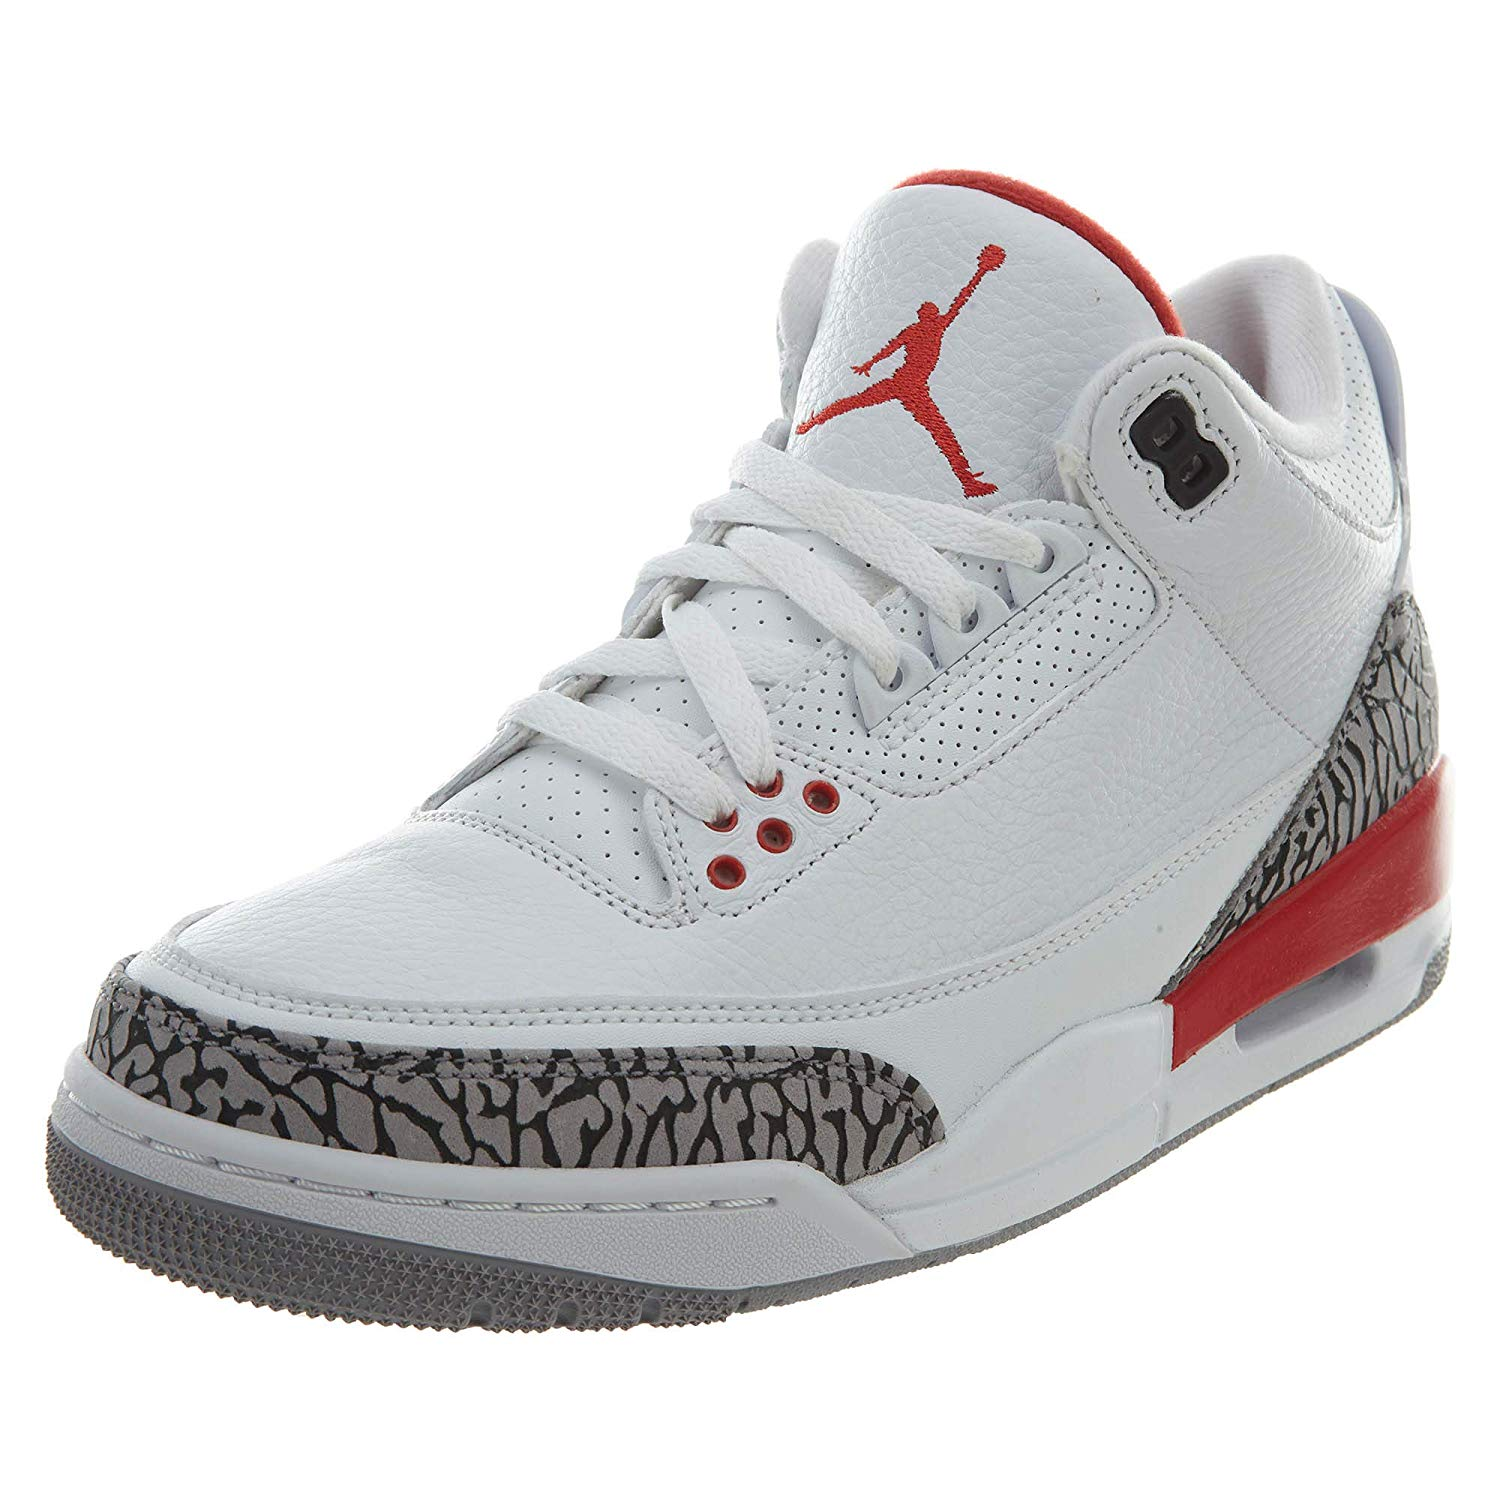 pretty nice 8c97f fbf40 Buy Air Jordan 4 White Cement Size 6c 6 11 12 Spizike ...